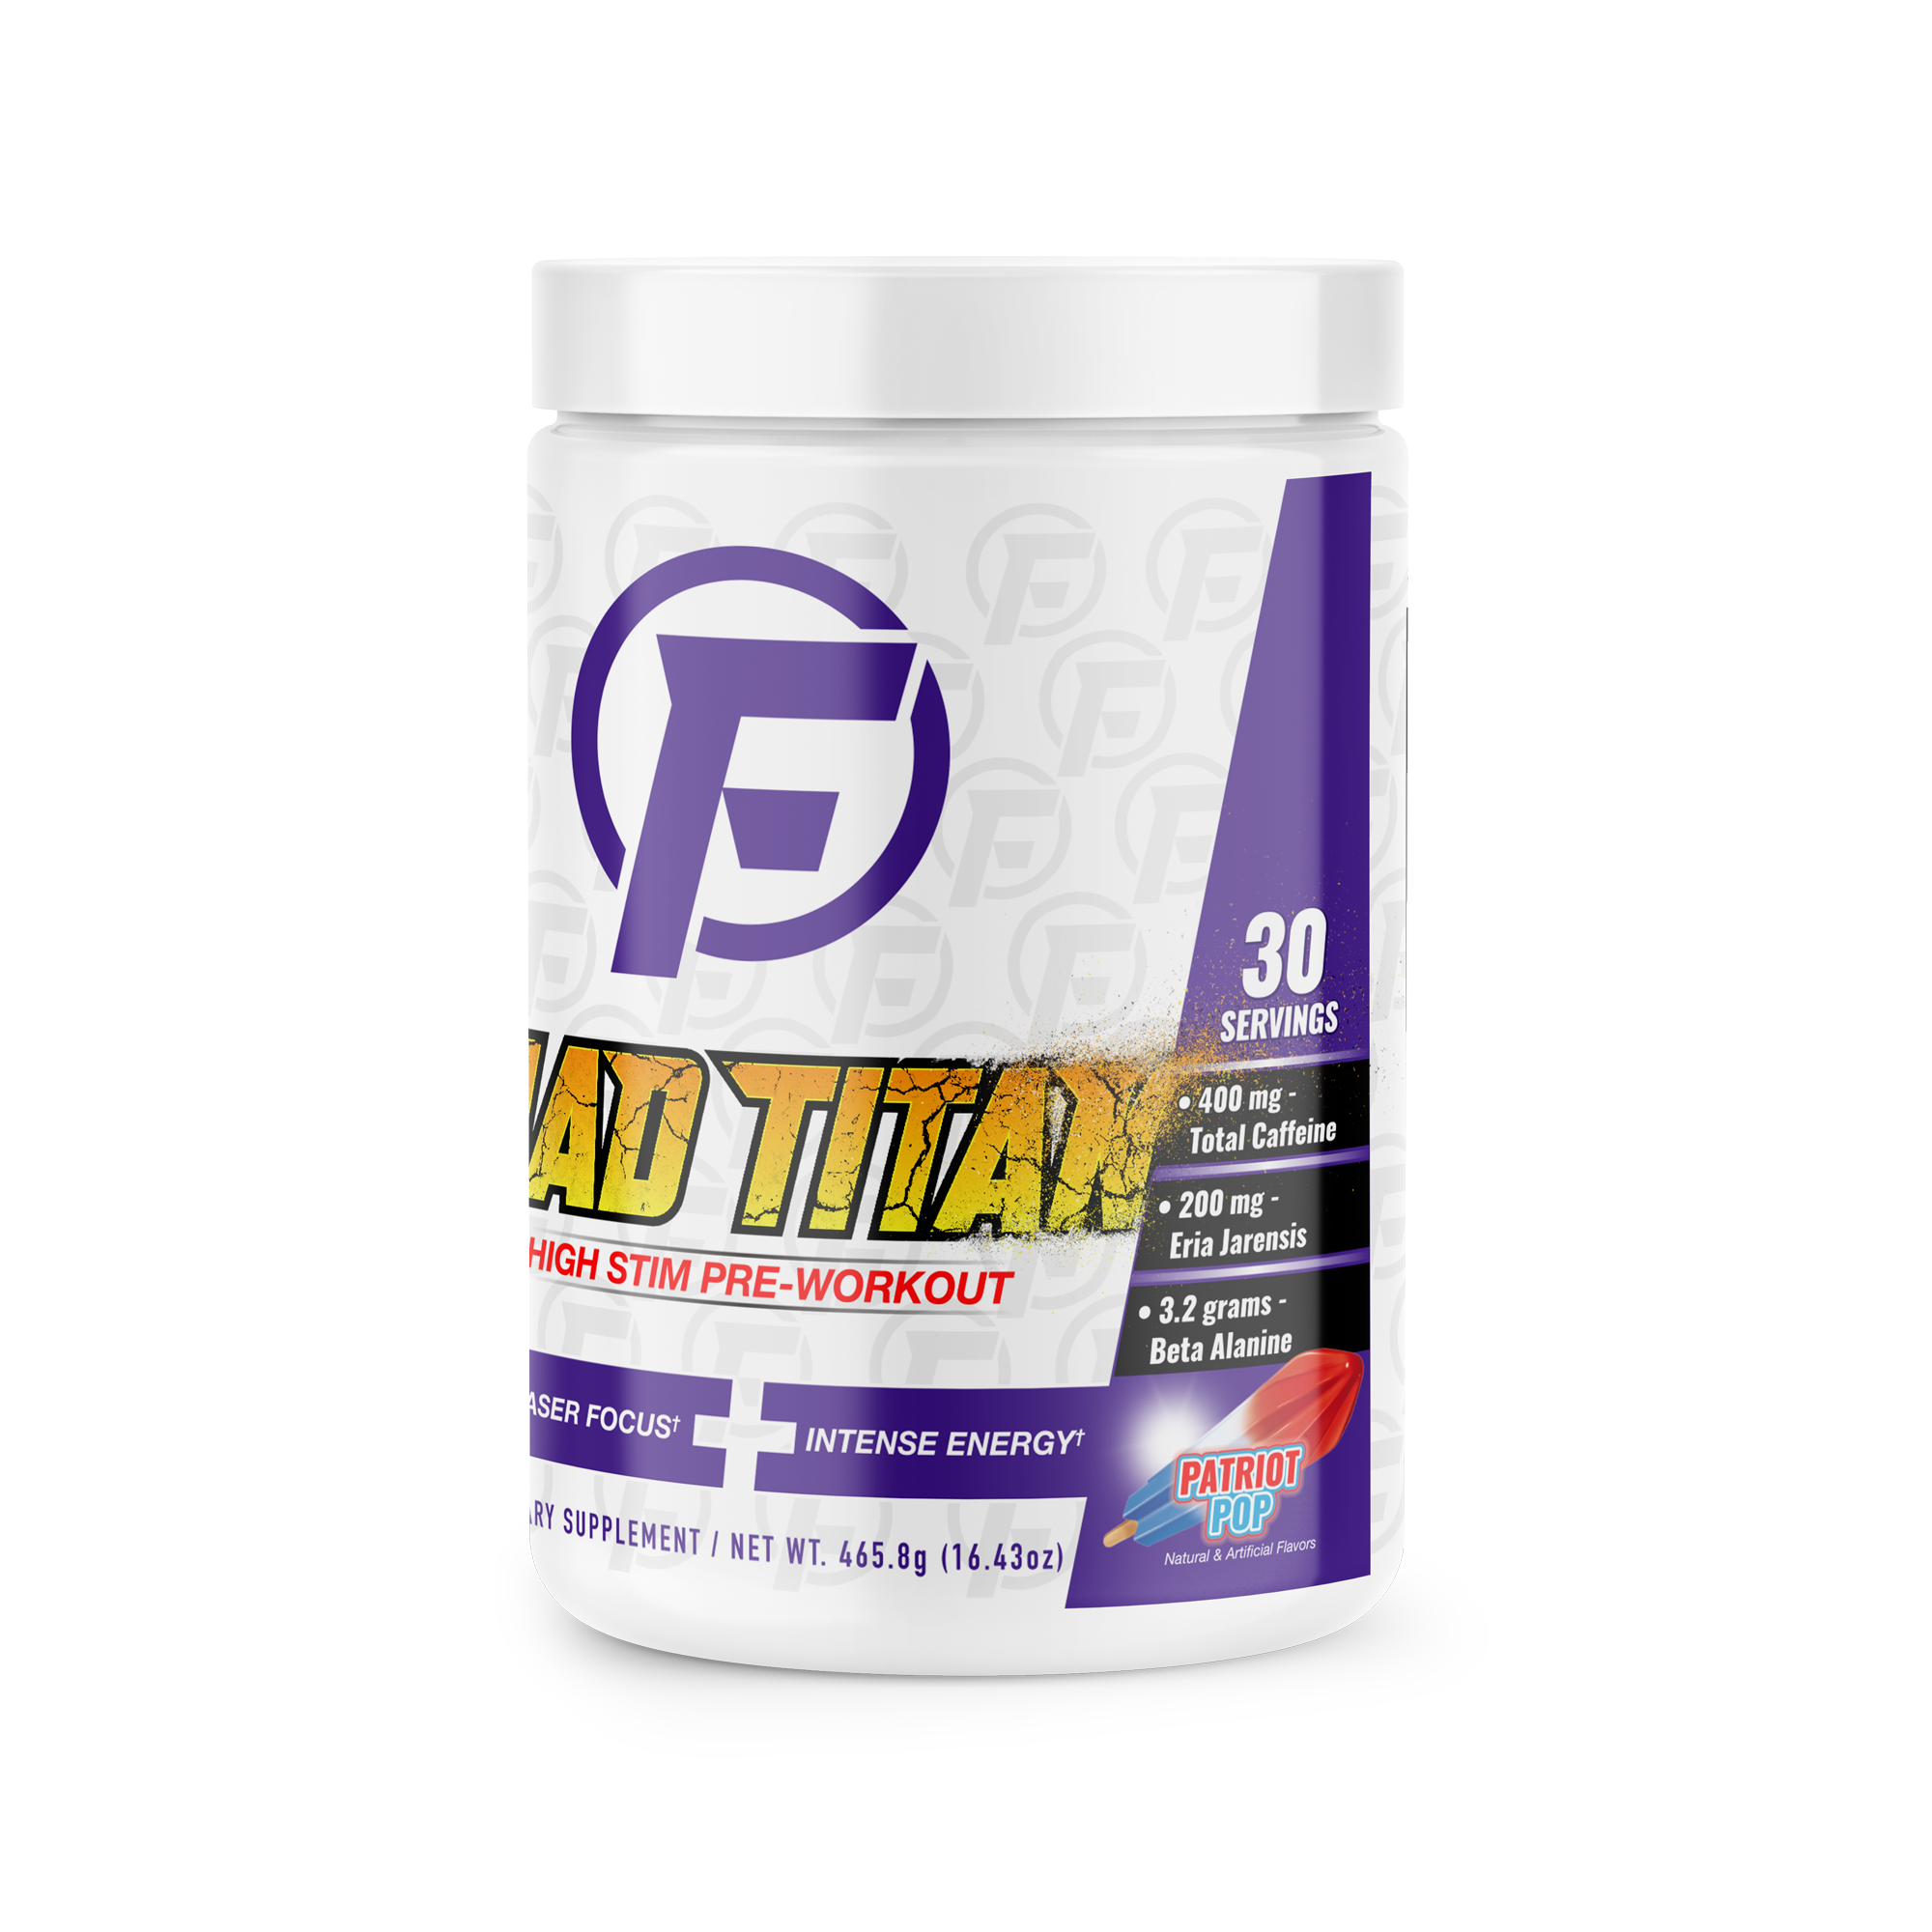 Mad Titan High Stim Pre Workout